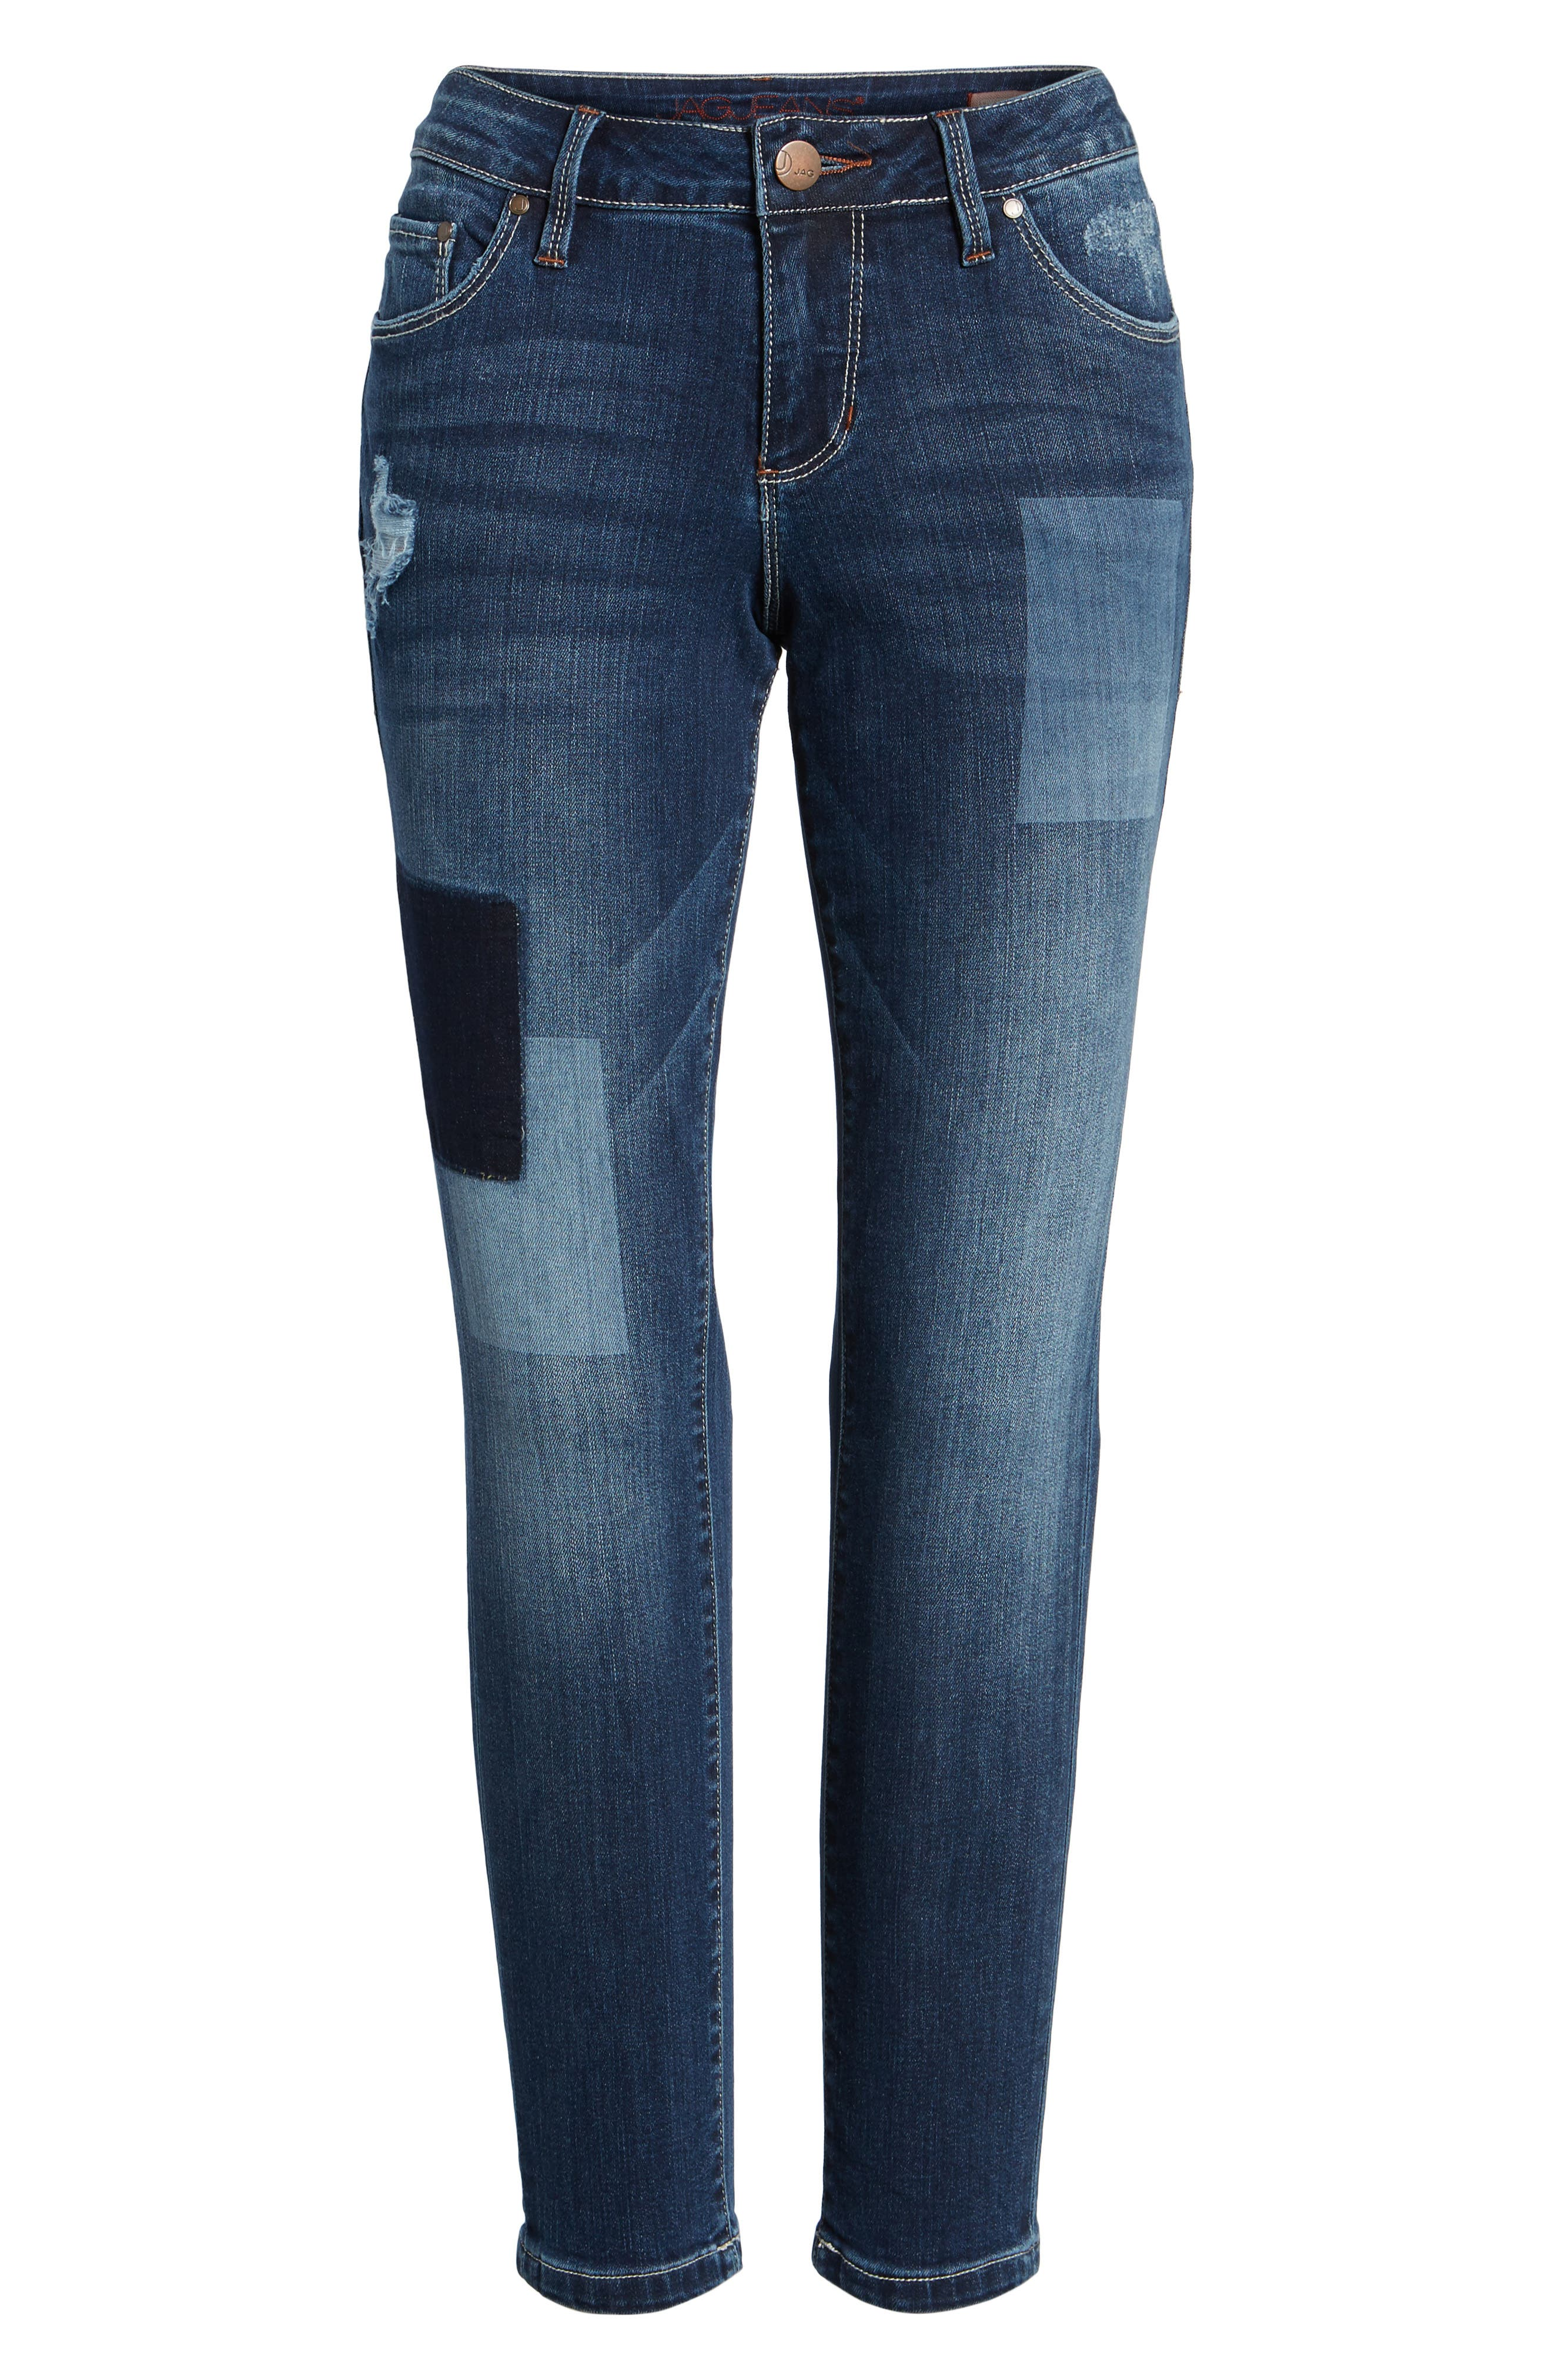 Mera Skinny Ankle Jeans,                         Main,                         color, Bucket Blue